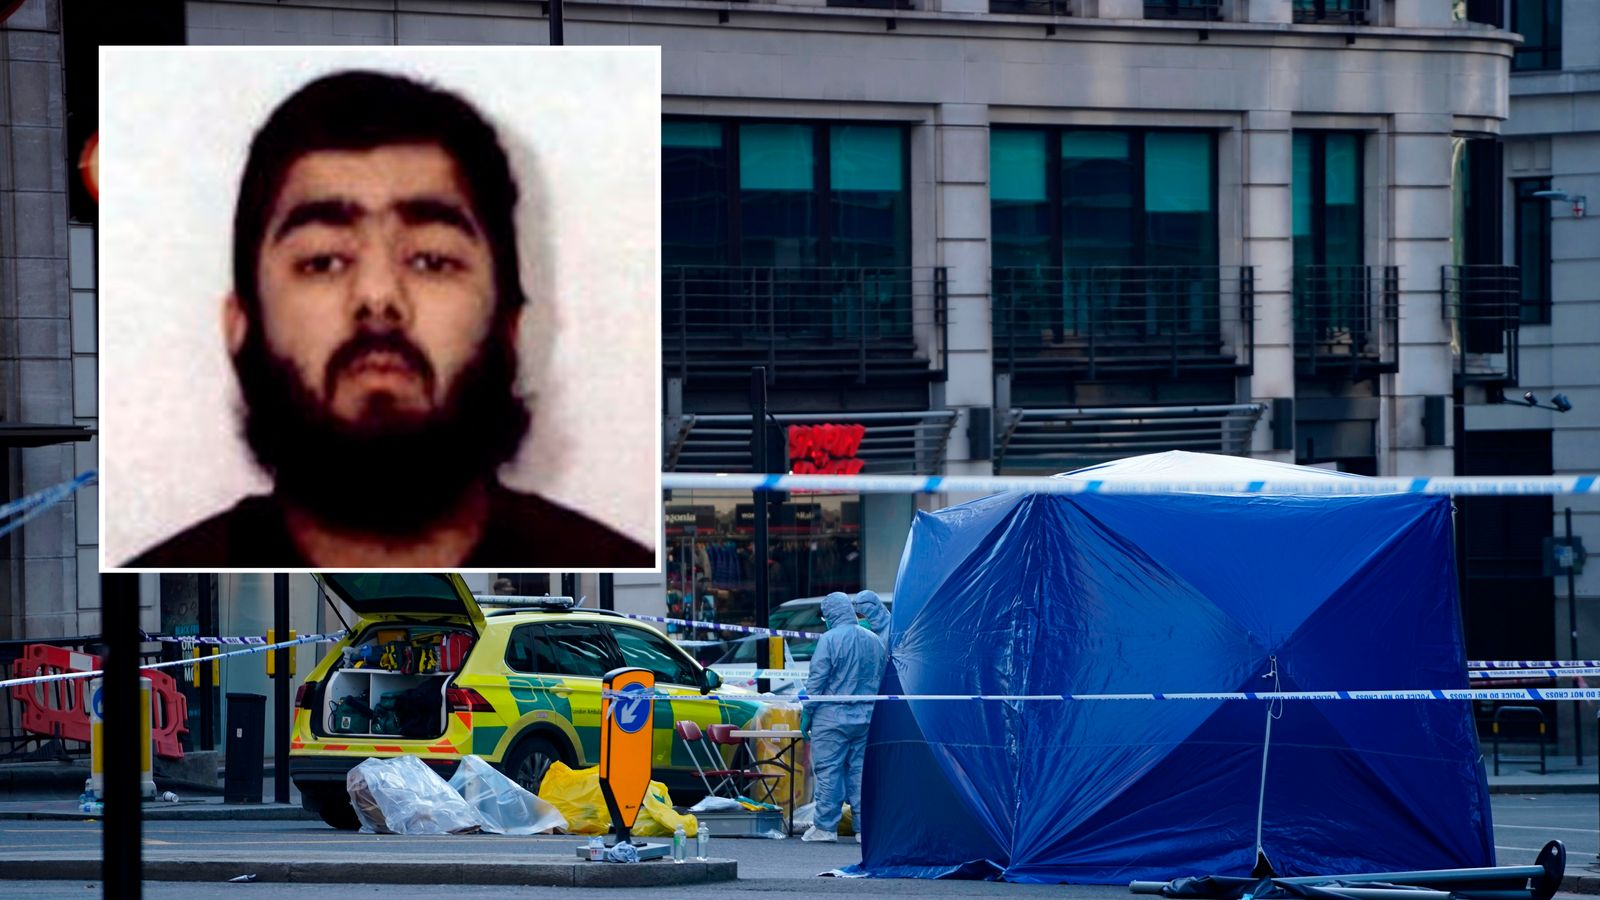 London Bridge killer Usman Khan was convicted terrorist recently freed from jail